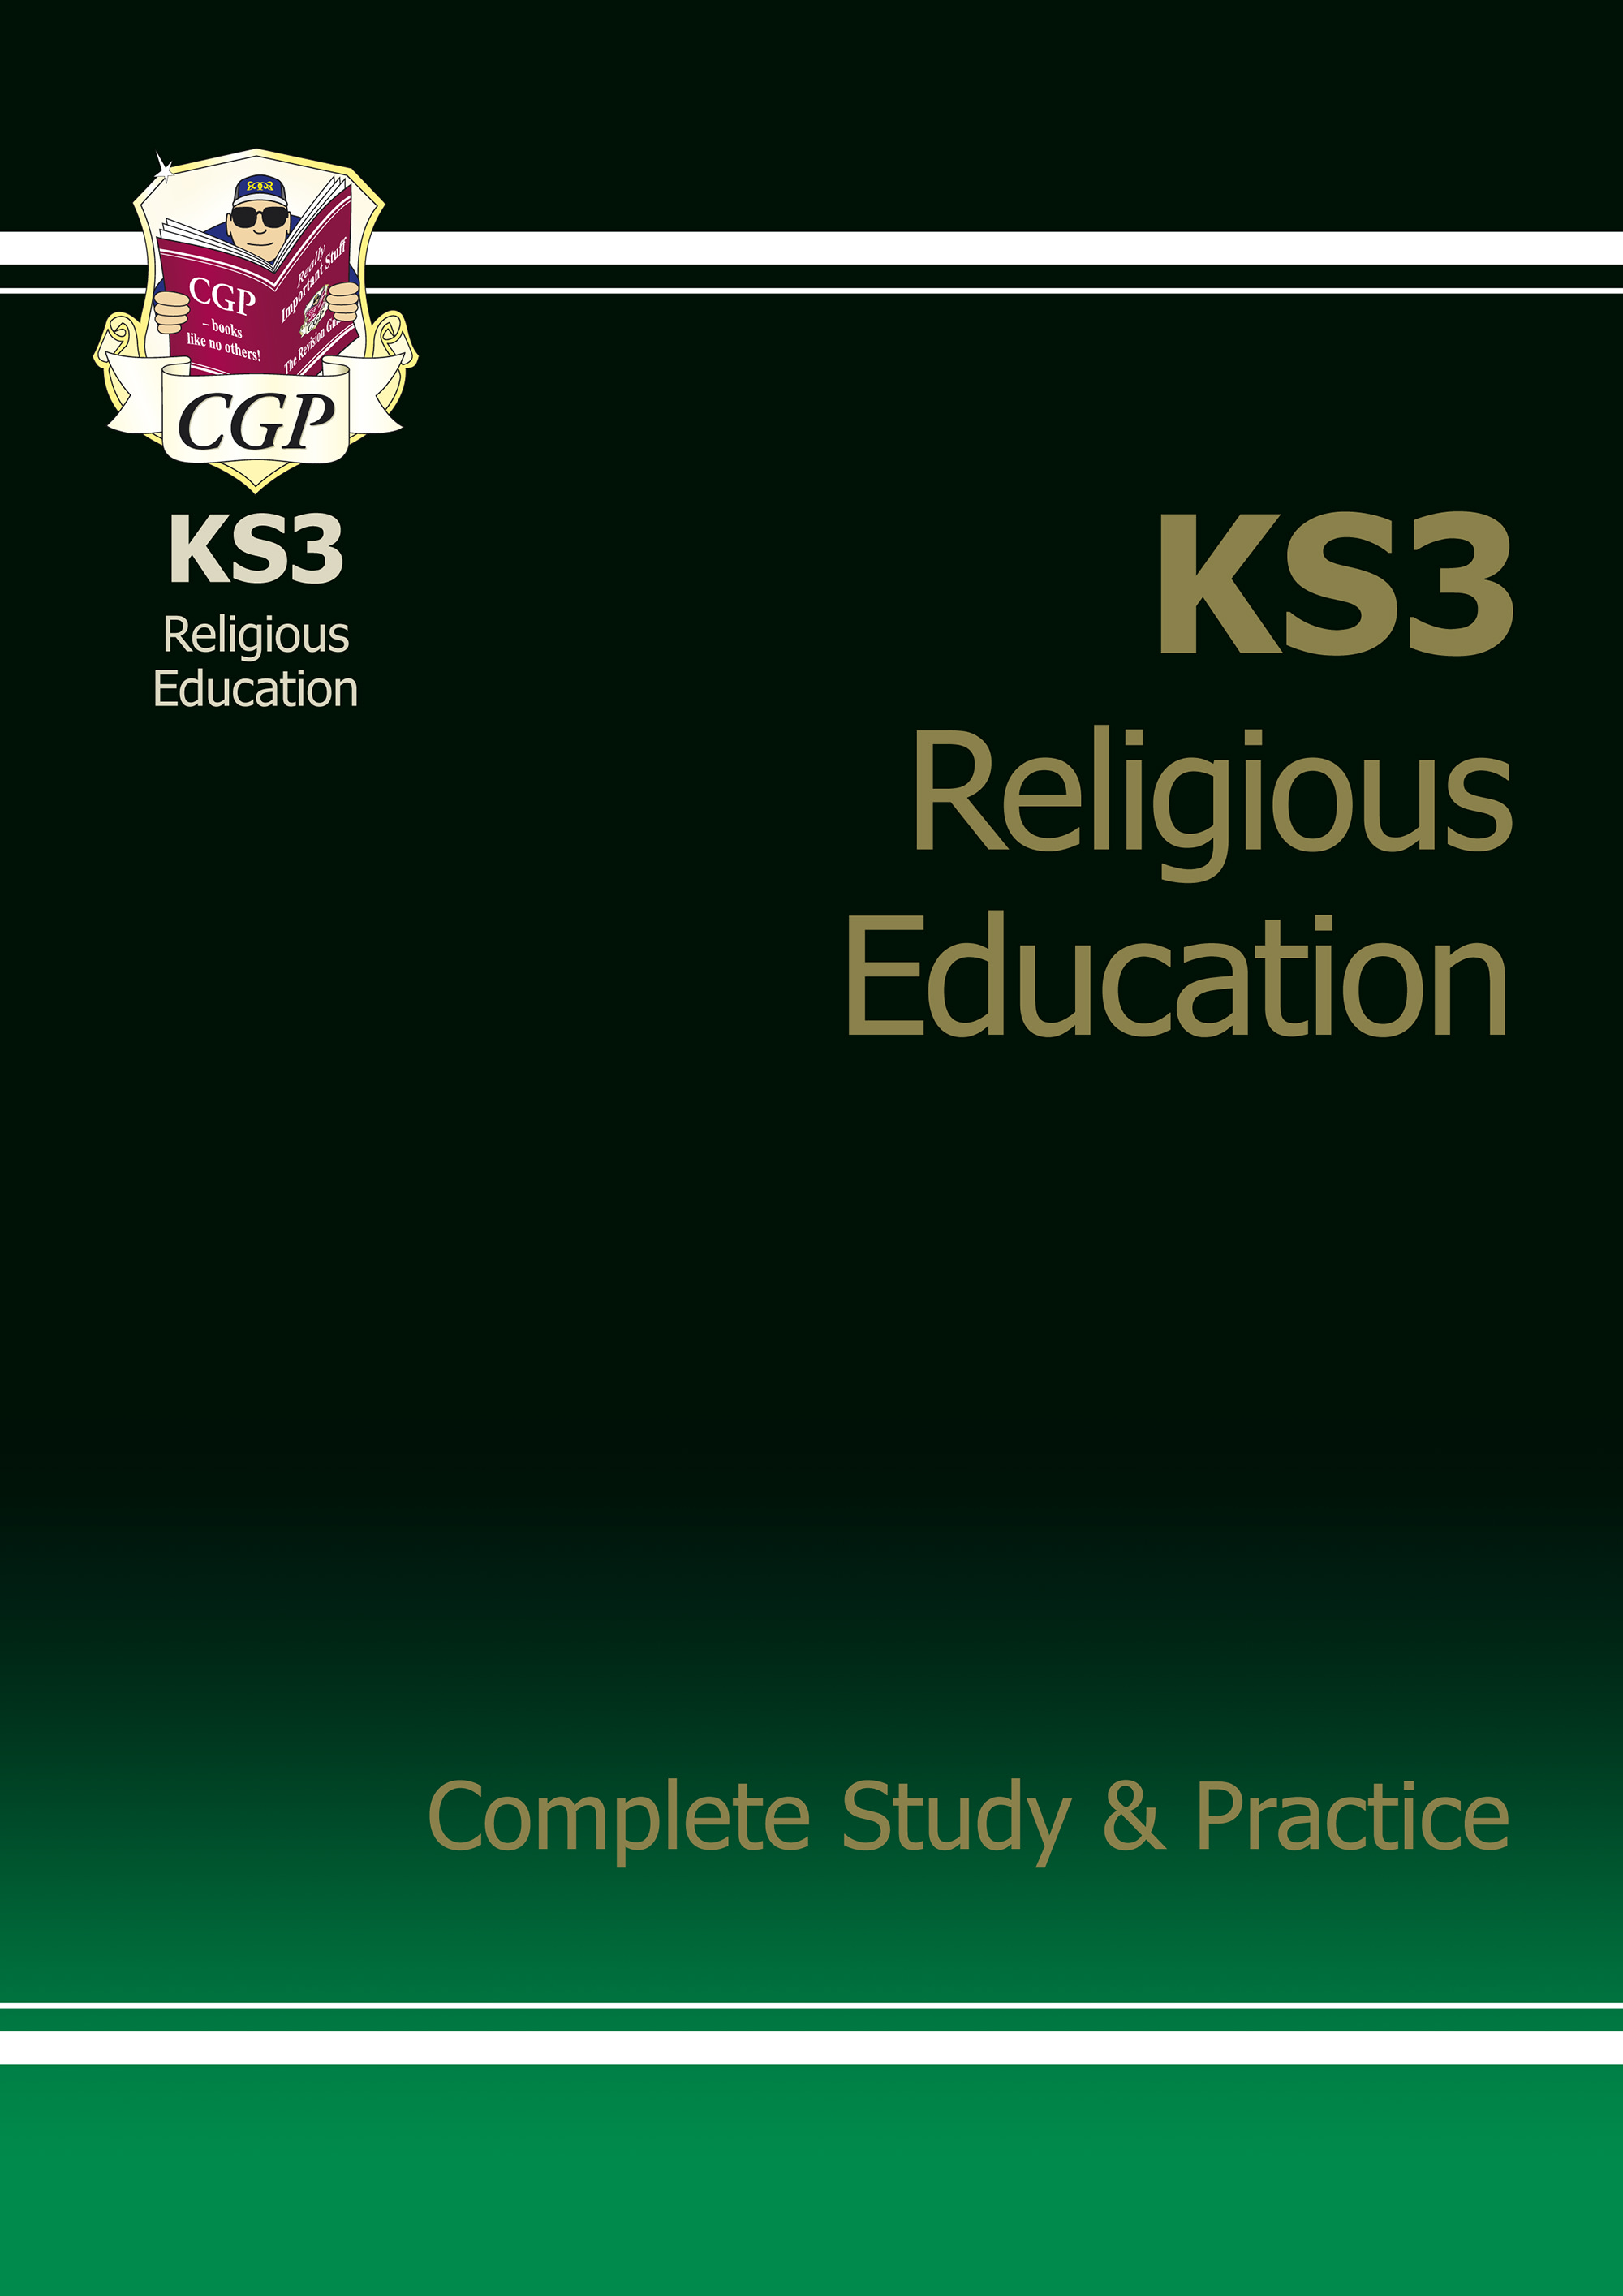 RHS31 - KS3 Religious Education Complete Study & Practice